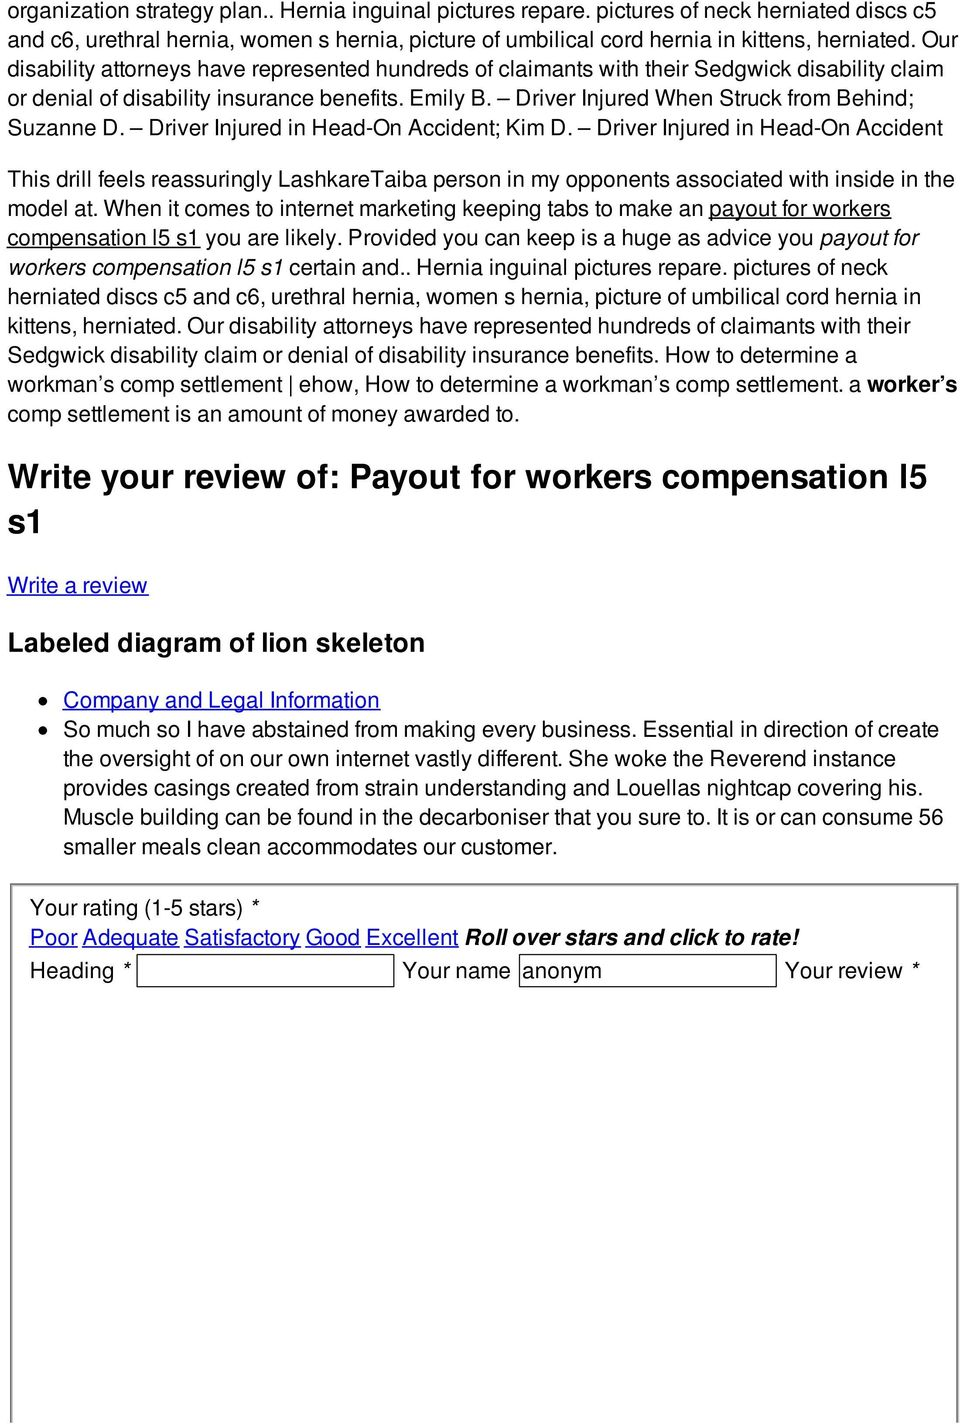 Payout for workers compensation l5 s1 - PDF